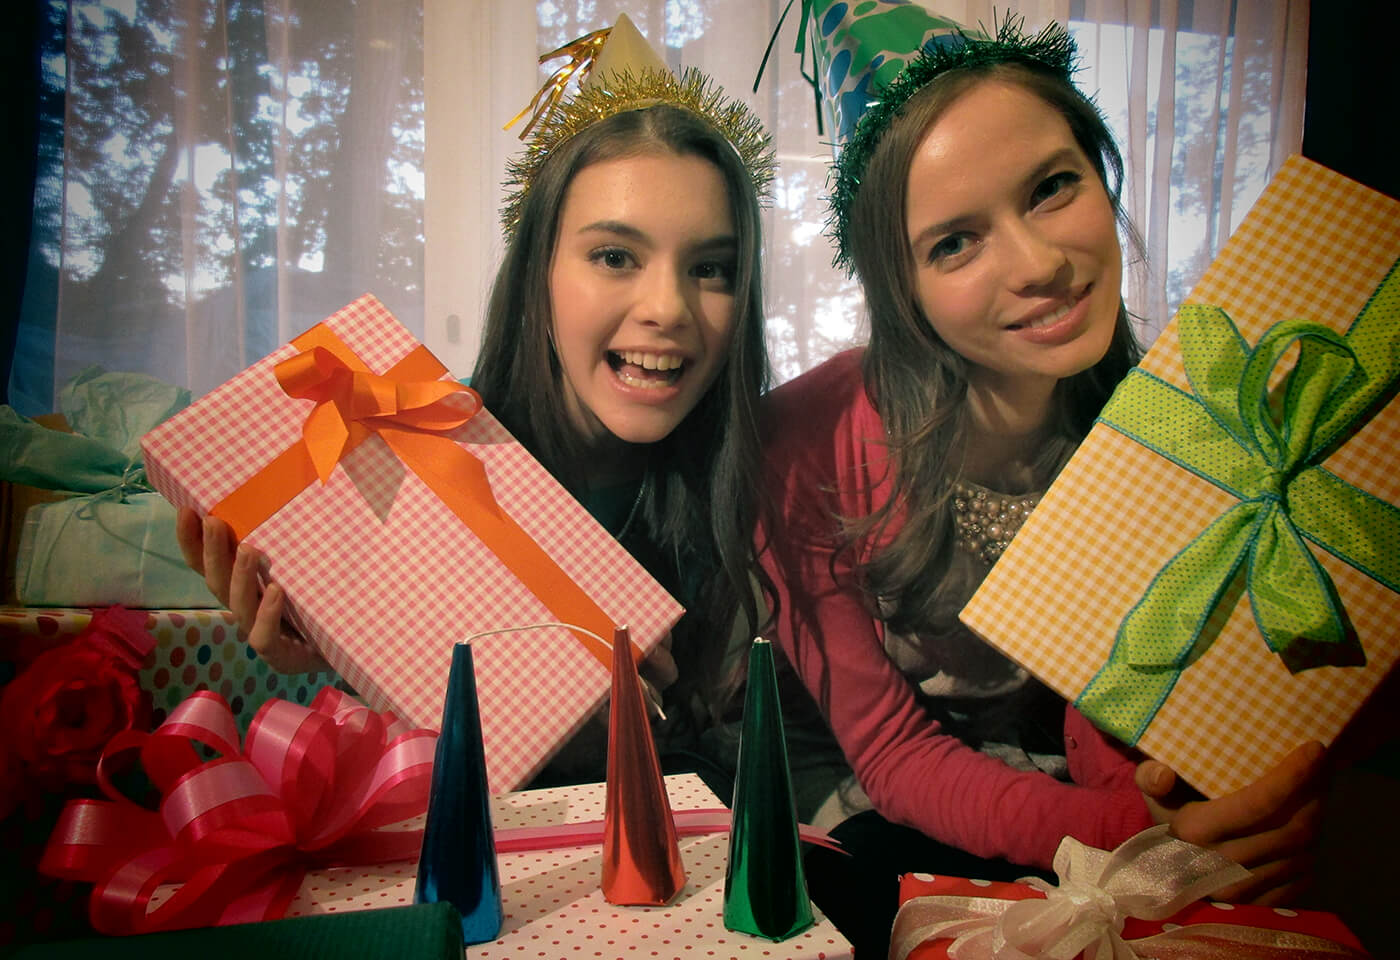 Image of two girls holding wrapped presents